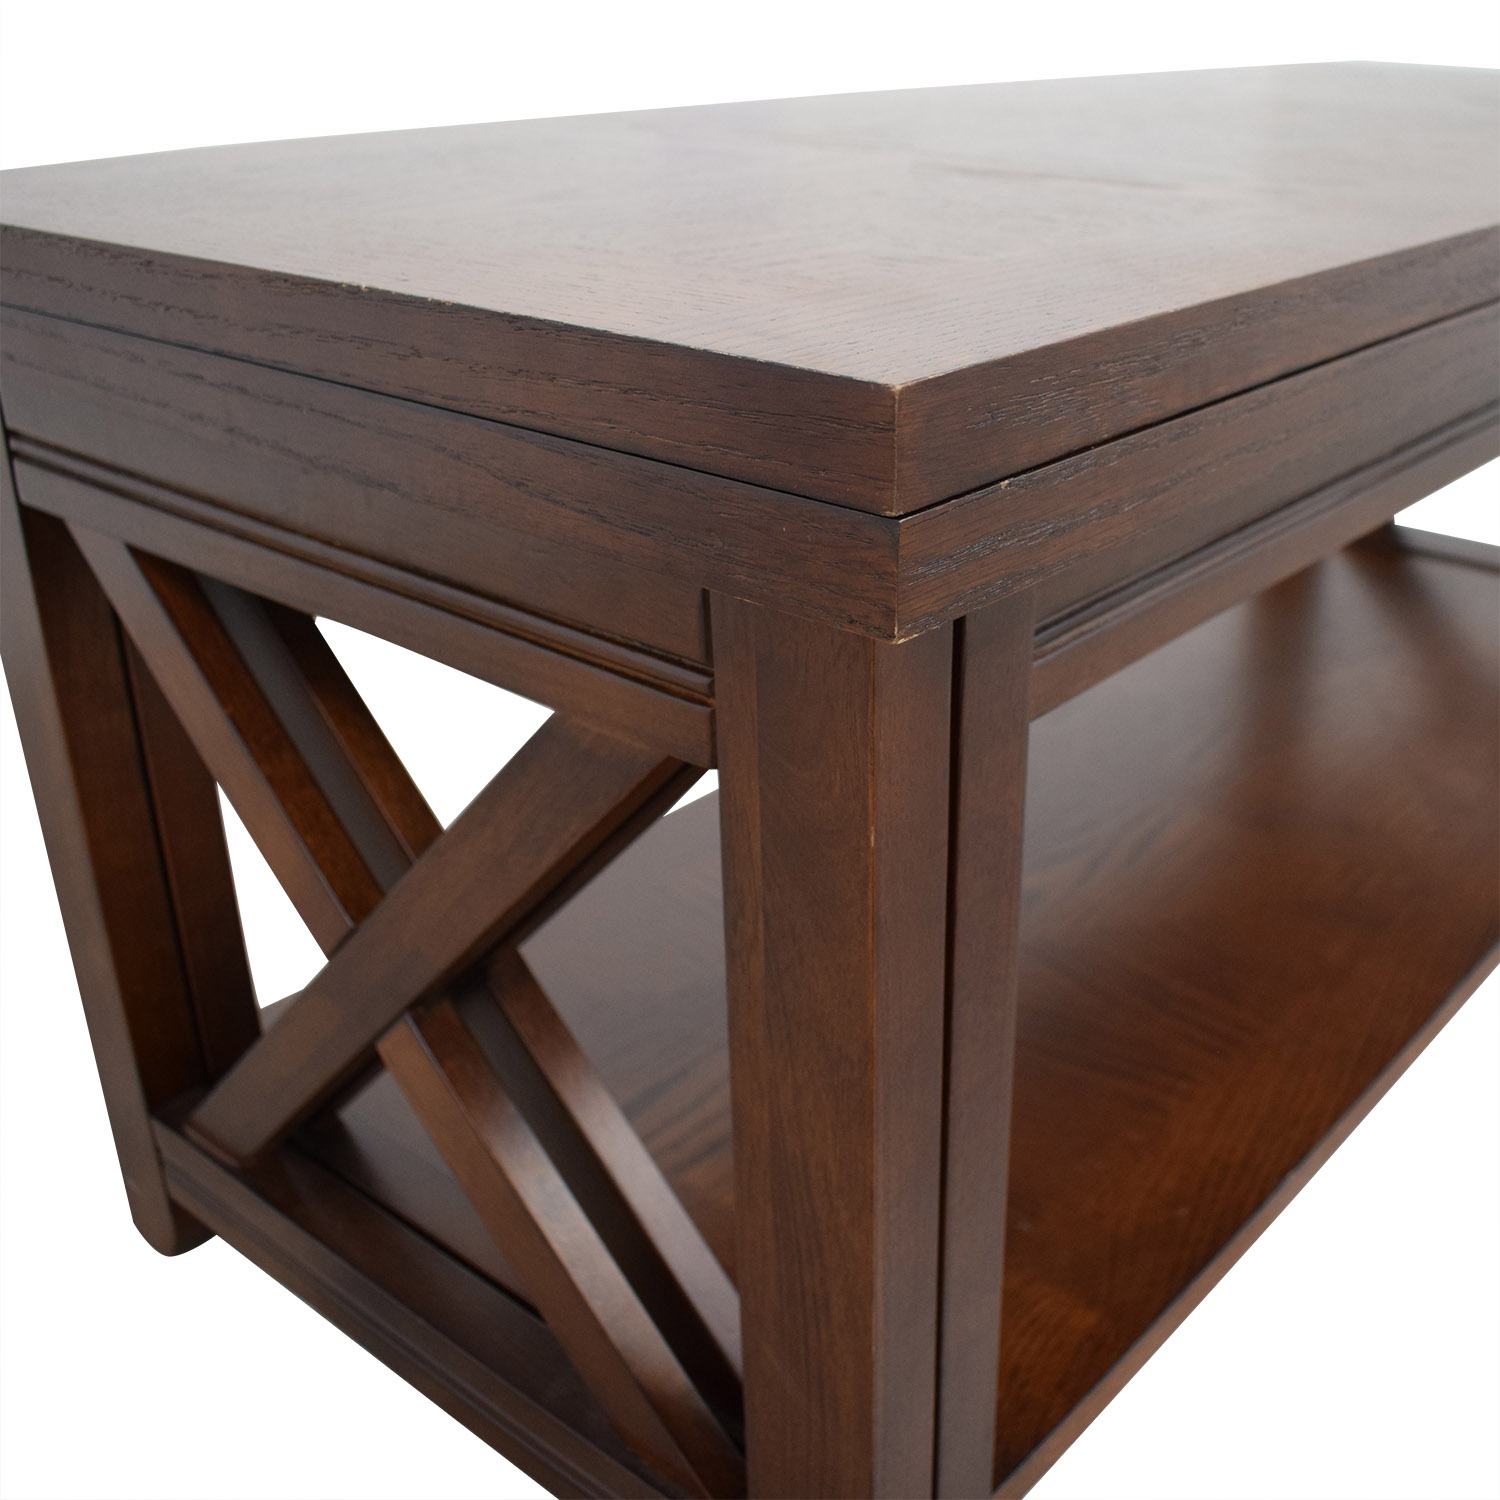 Groovy 55 Off Raymour Flanigan Raymour Flanigan Tucson Extendable Coffee Table Tables Andrewgaddart Wooden Chair Designs For Living Room Andrewgaddartcom